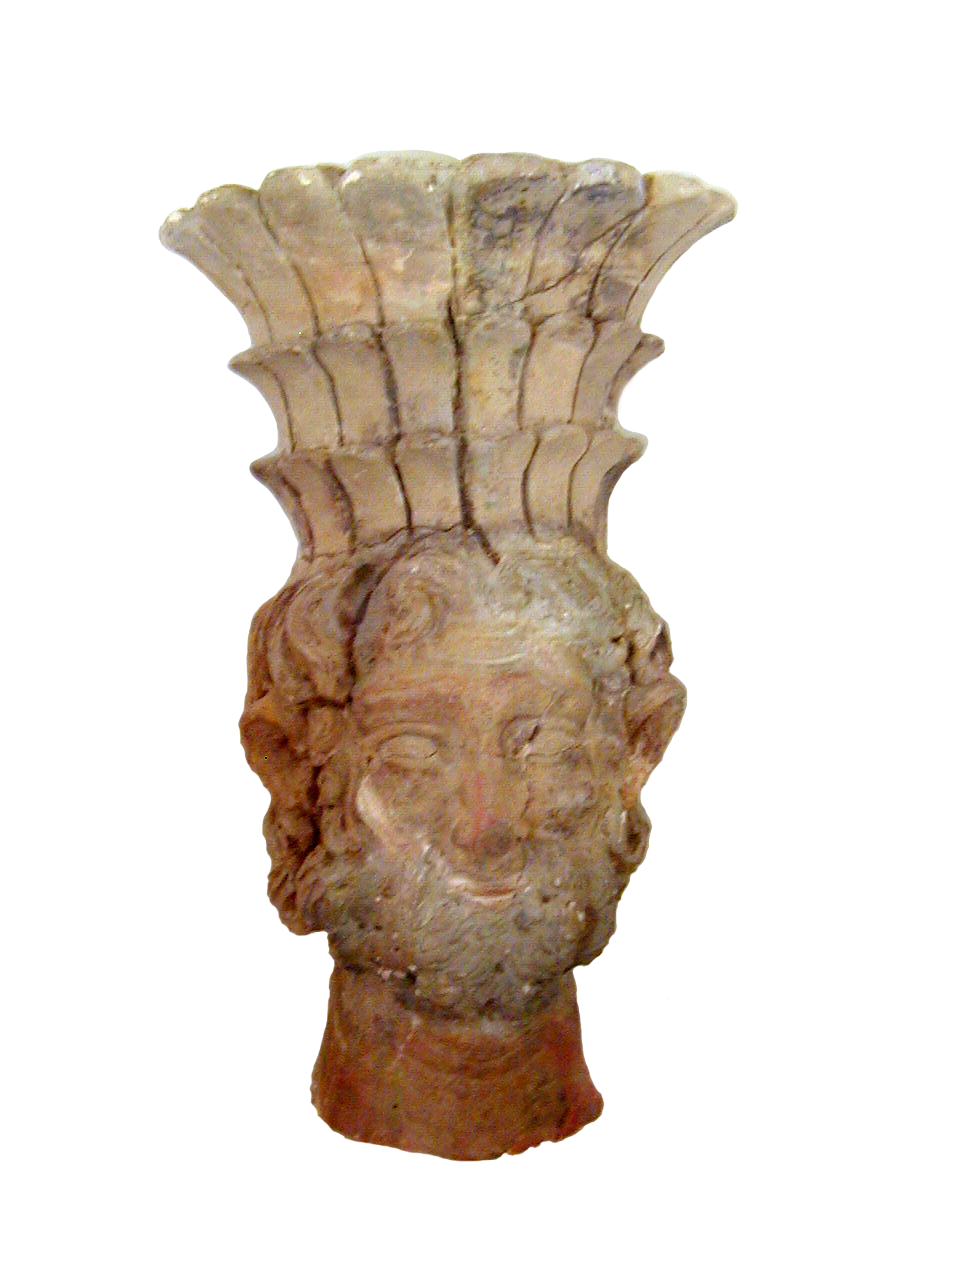 a description of carthage Description head from an over-life-sized marble statue of the emperor vespasian,  excavated/findspot: carthage (africa,tunisia,carthage) materials marble.